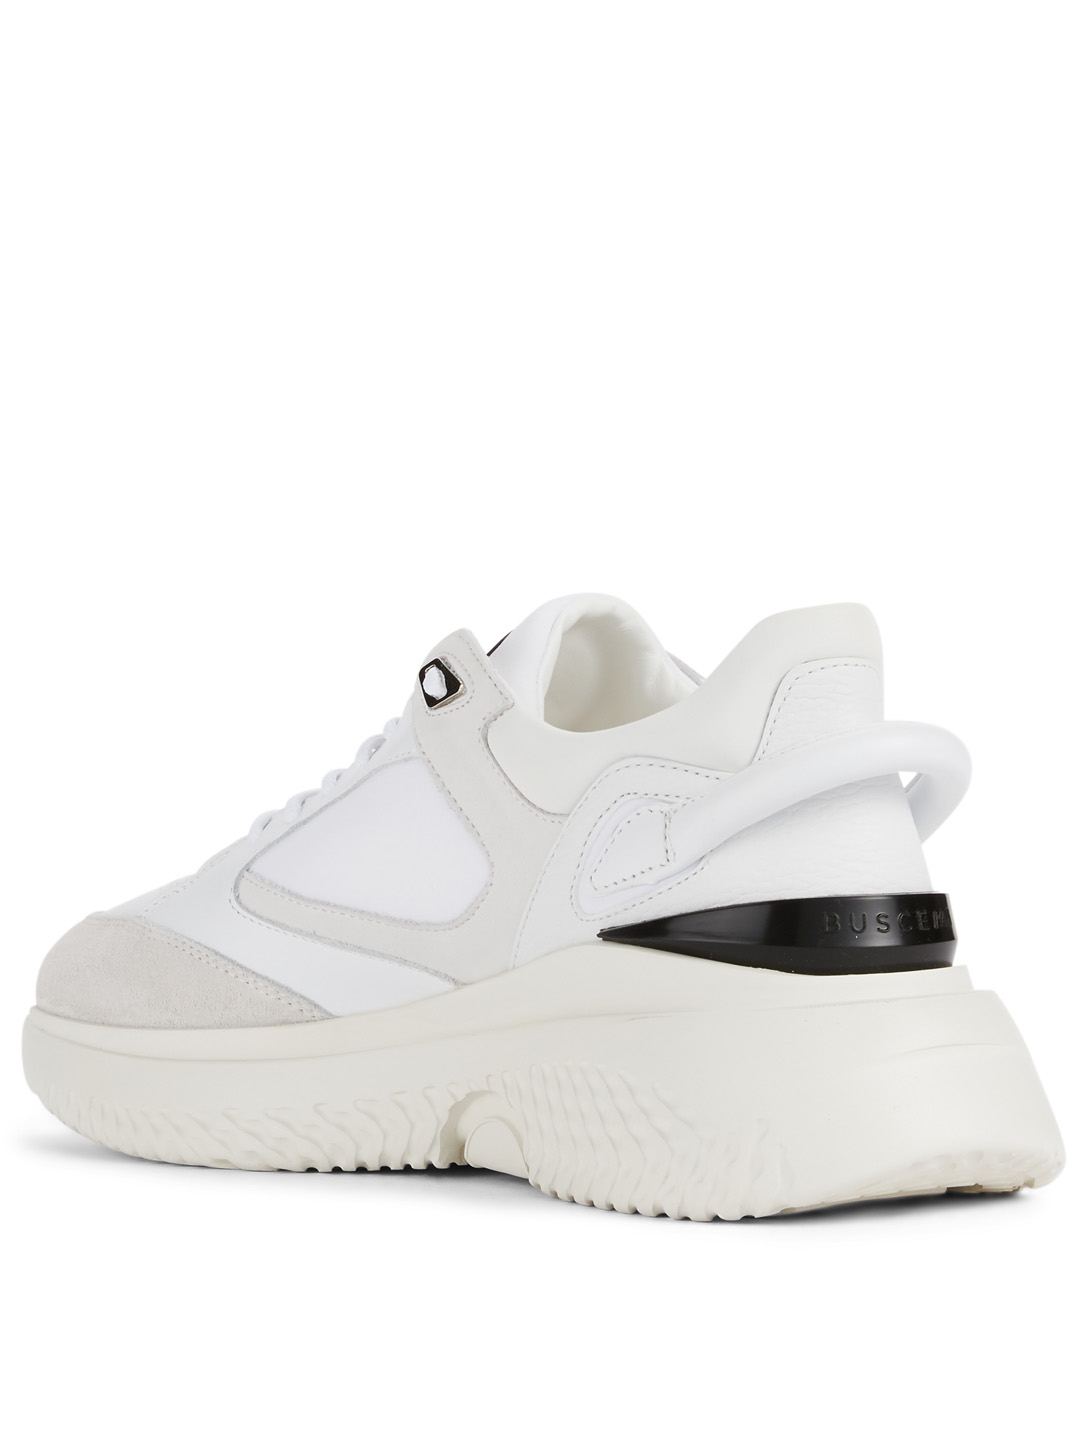 BUSCEMI Veloce Leather Sneakers Men's White